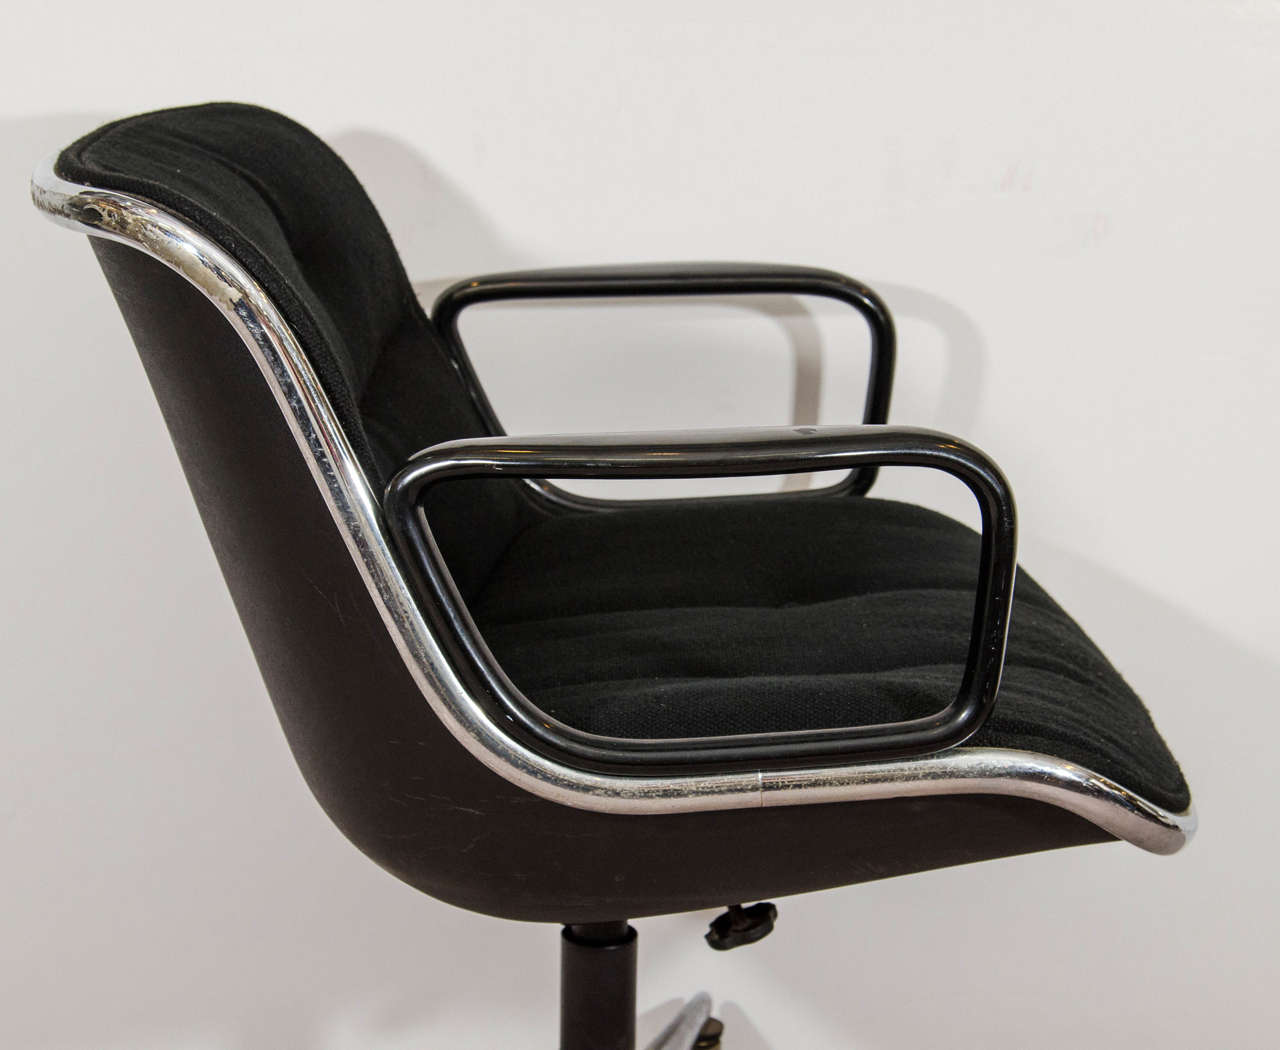 Midcentury Charles Pollock for Knoll Executive Chair with Original Label In Good Condition For Sale In New York, NY